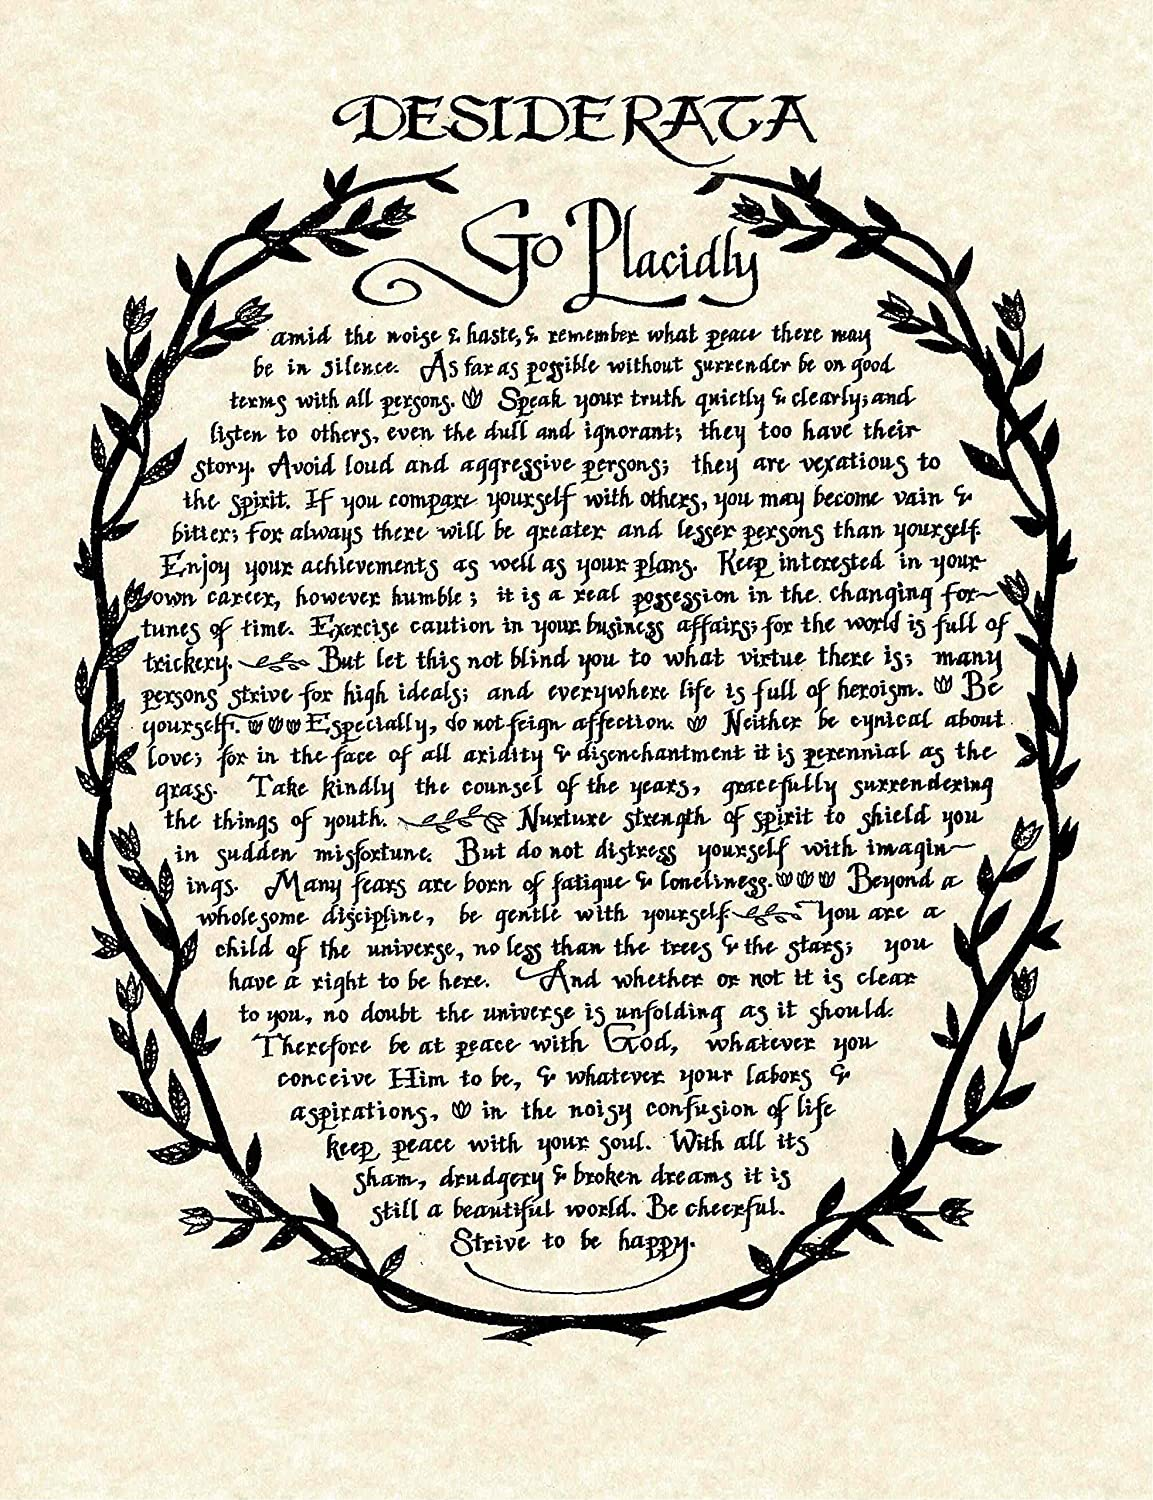 image relating to Desiderata Printable named : Desiderata Poem inside Wreath Print in opposition to Authentic